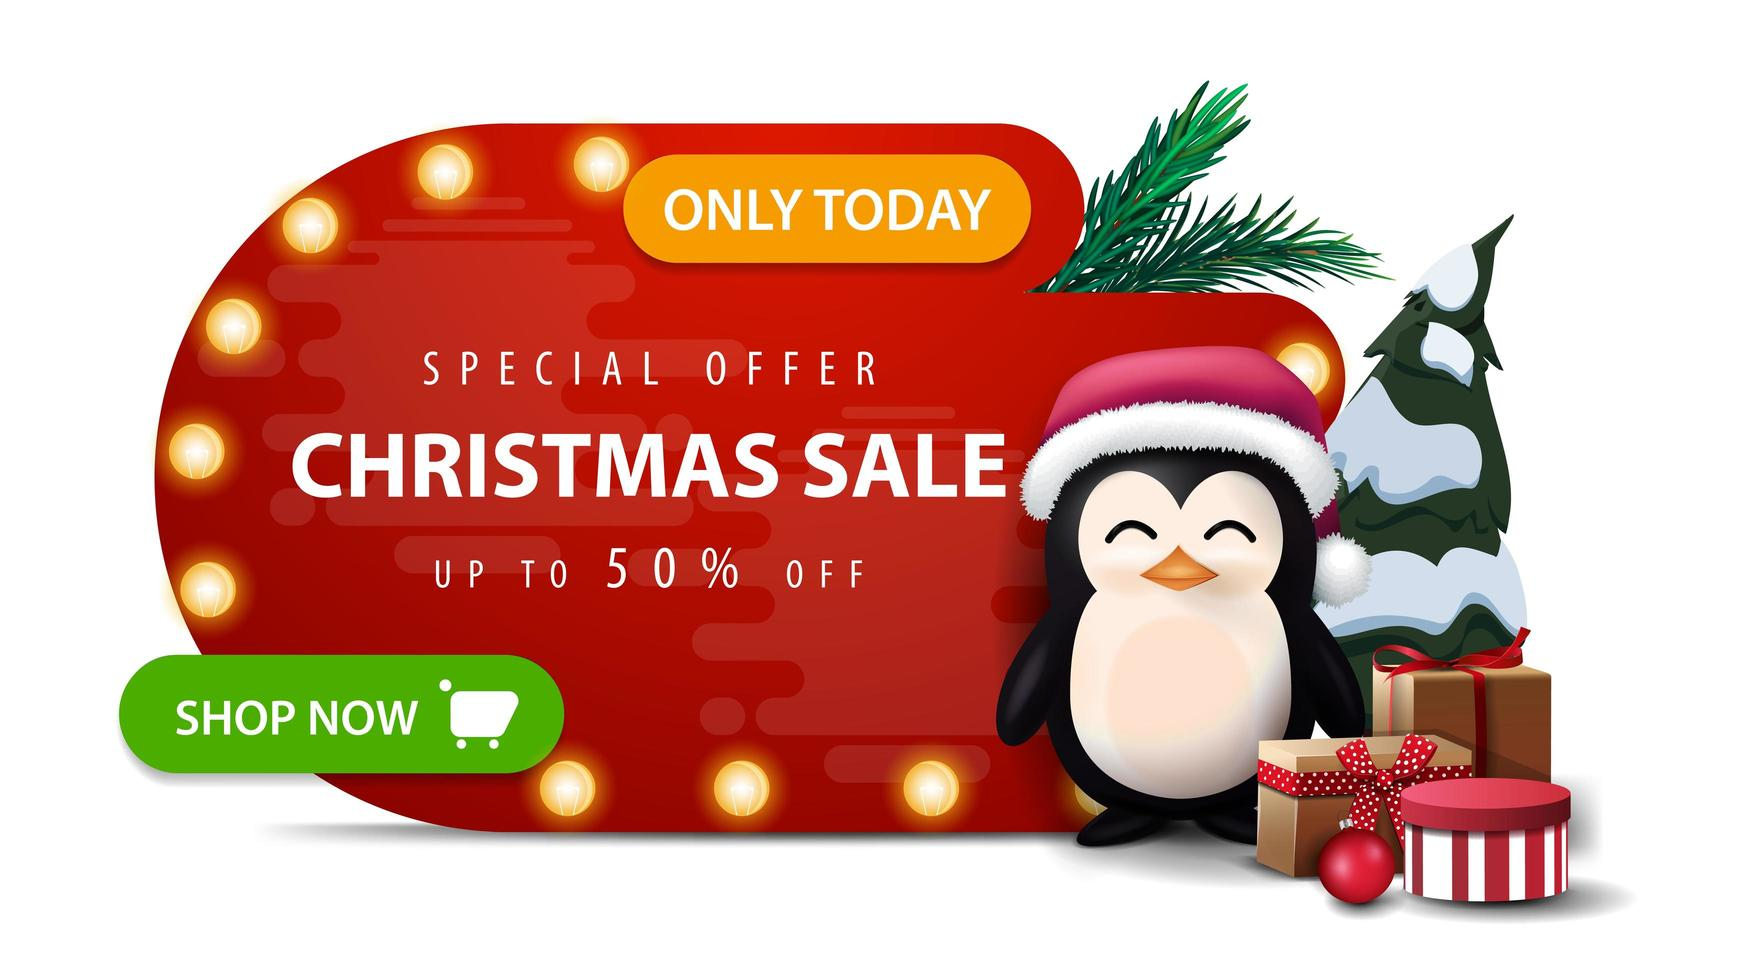 Only today, special offer, Christmas sale, up to 50 off, red abstract shape discount banner with bulb lights, green button and penguin in Santa Claus hat with presents isolated on white background vector